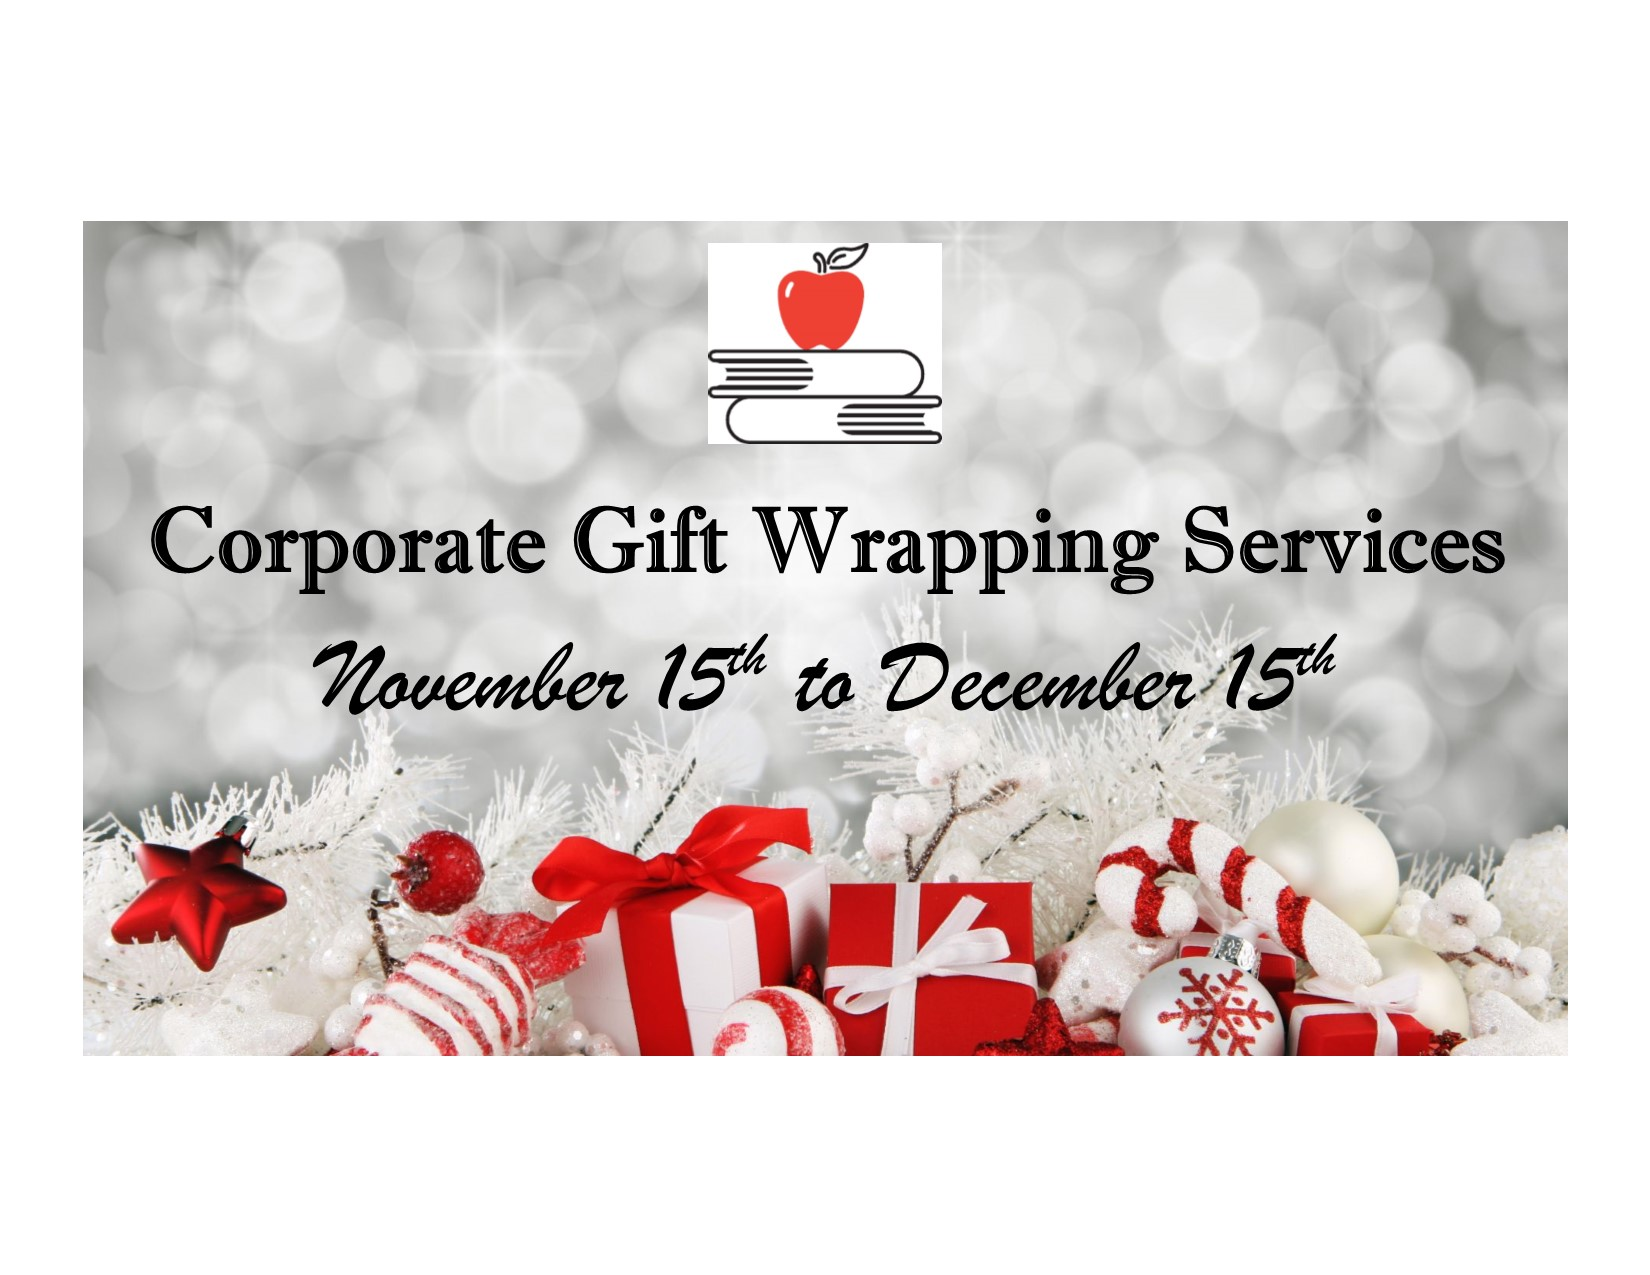 Holiday Gift Wrap 2020–Corporate Gift Wrapping Services in Lieu of Mall Booth